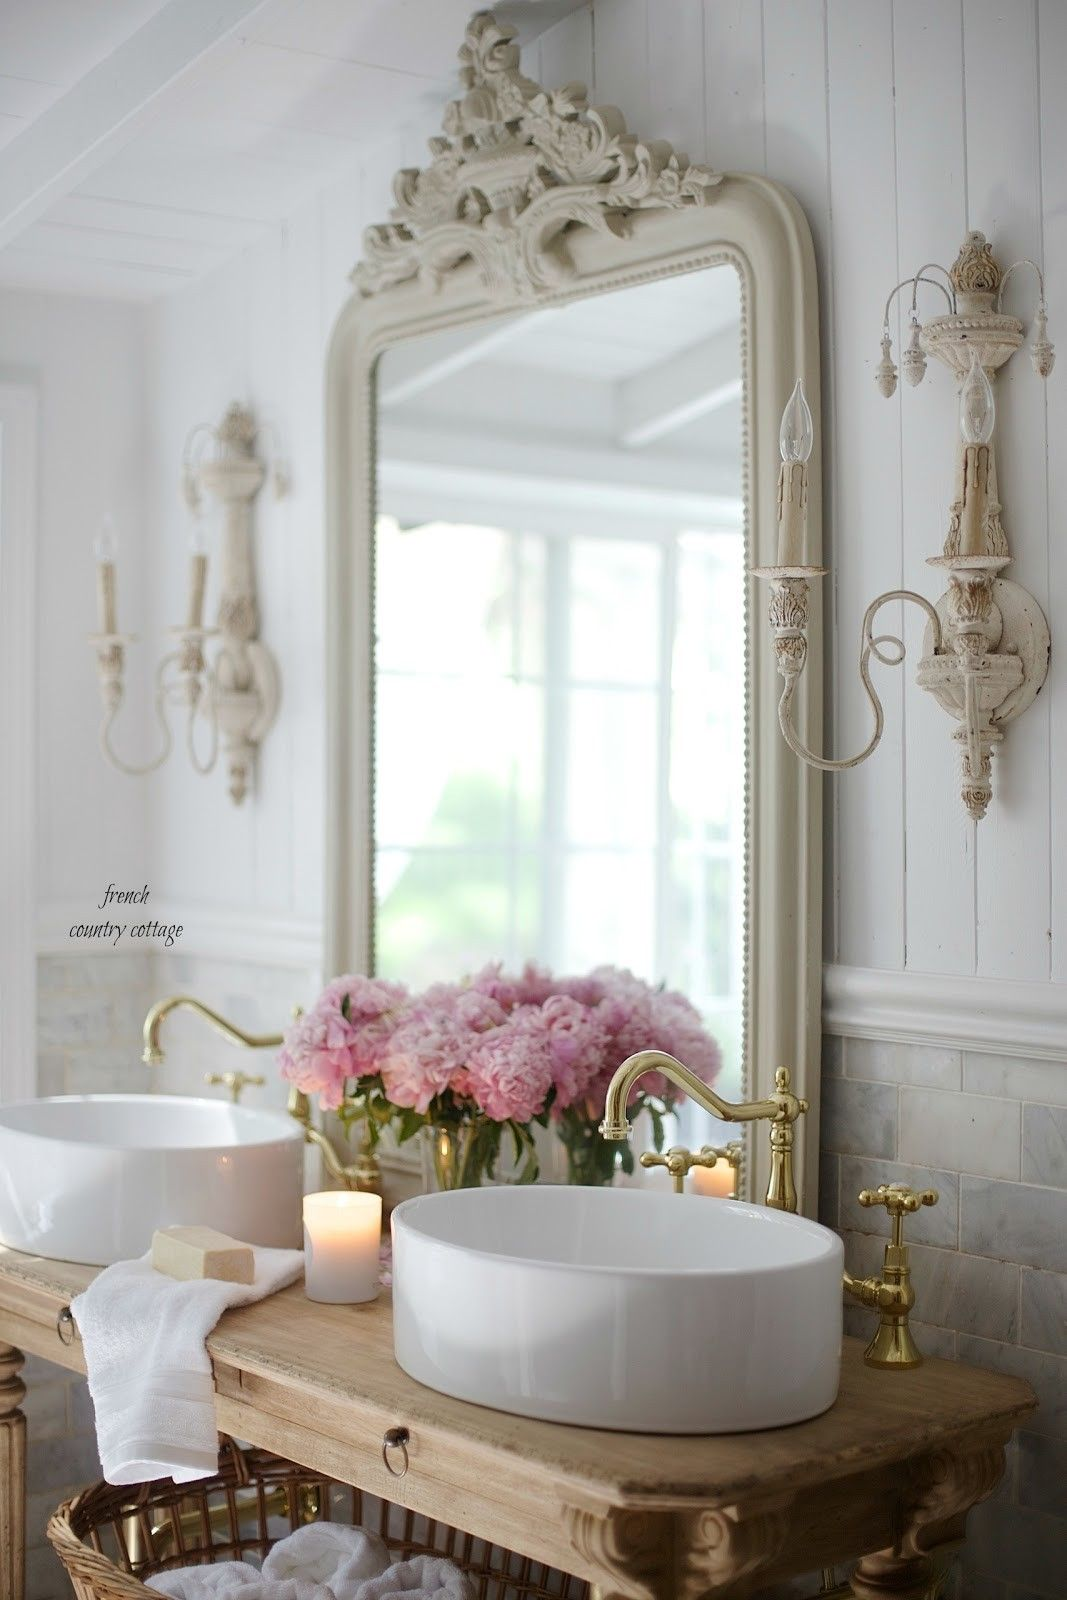 Pin by Amber Anderson on B French country | French cottage ...